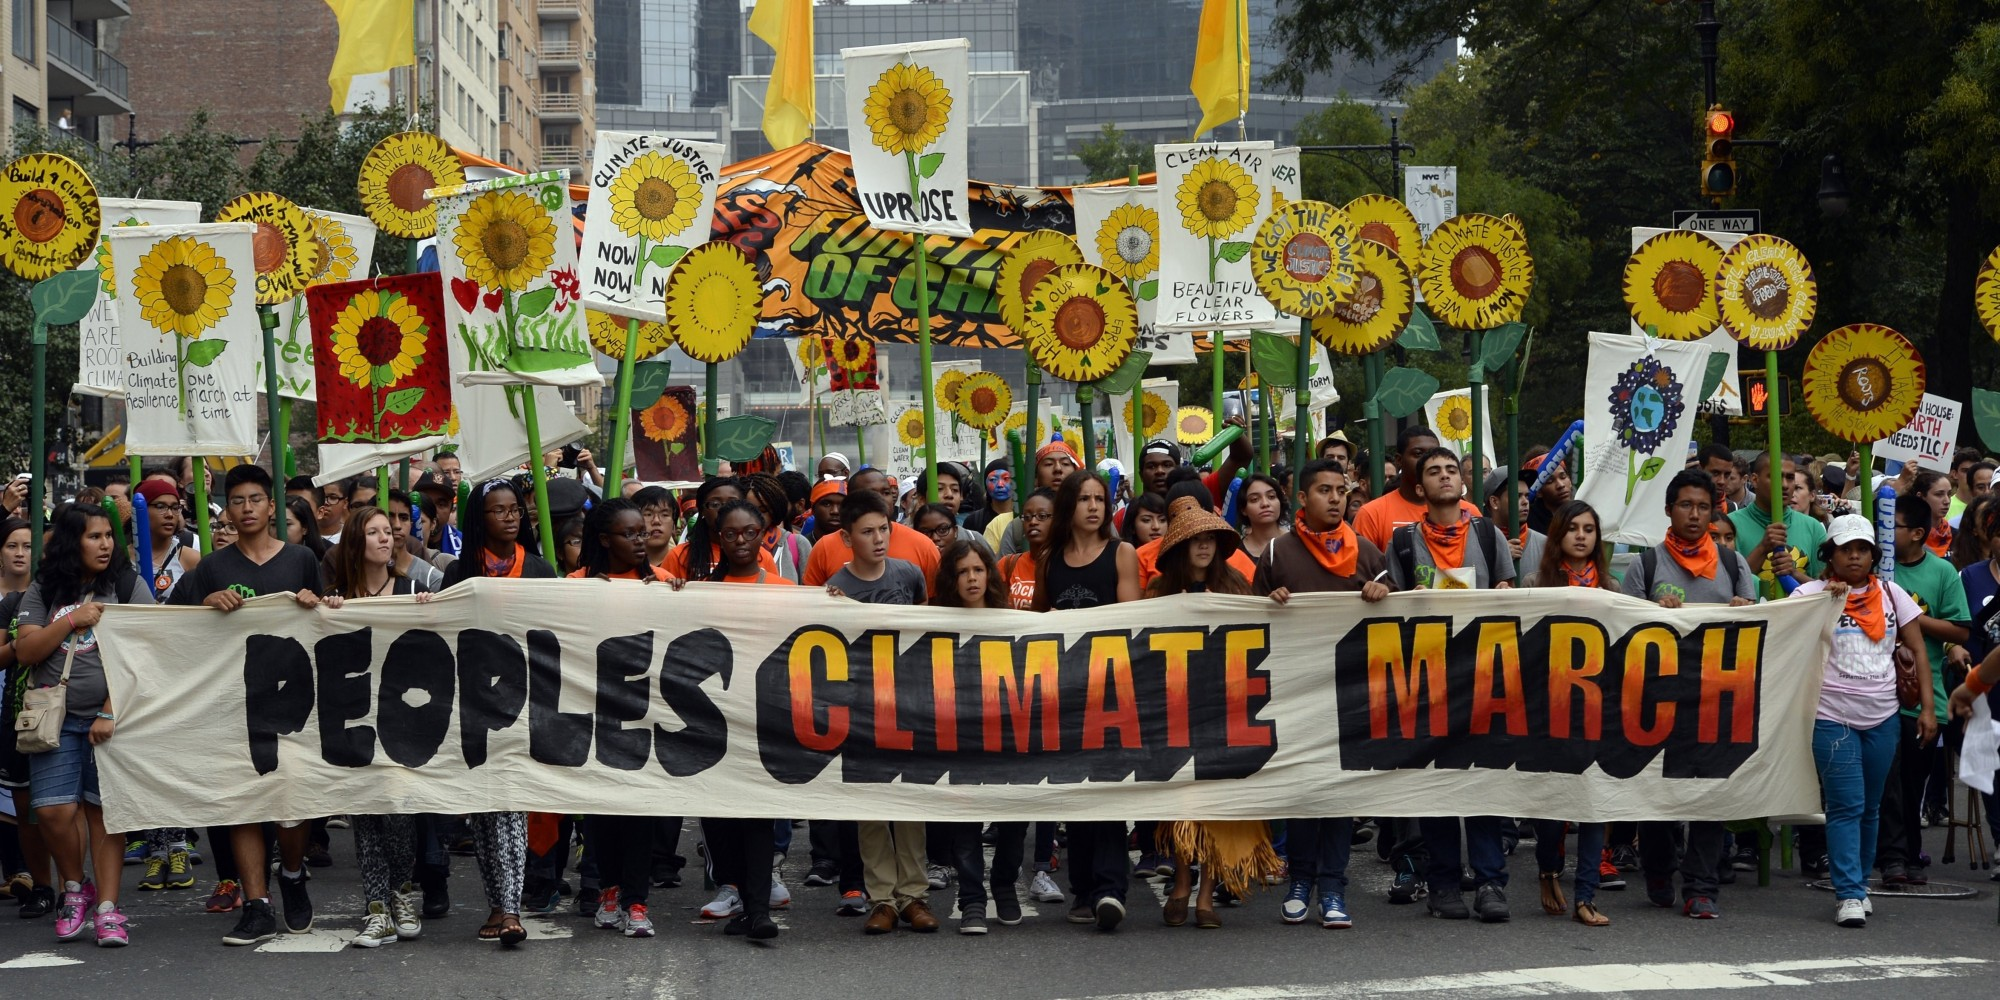 Paying climate debts for global climate justice